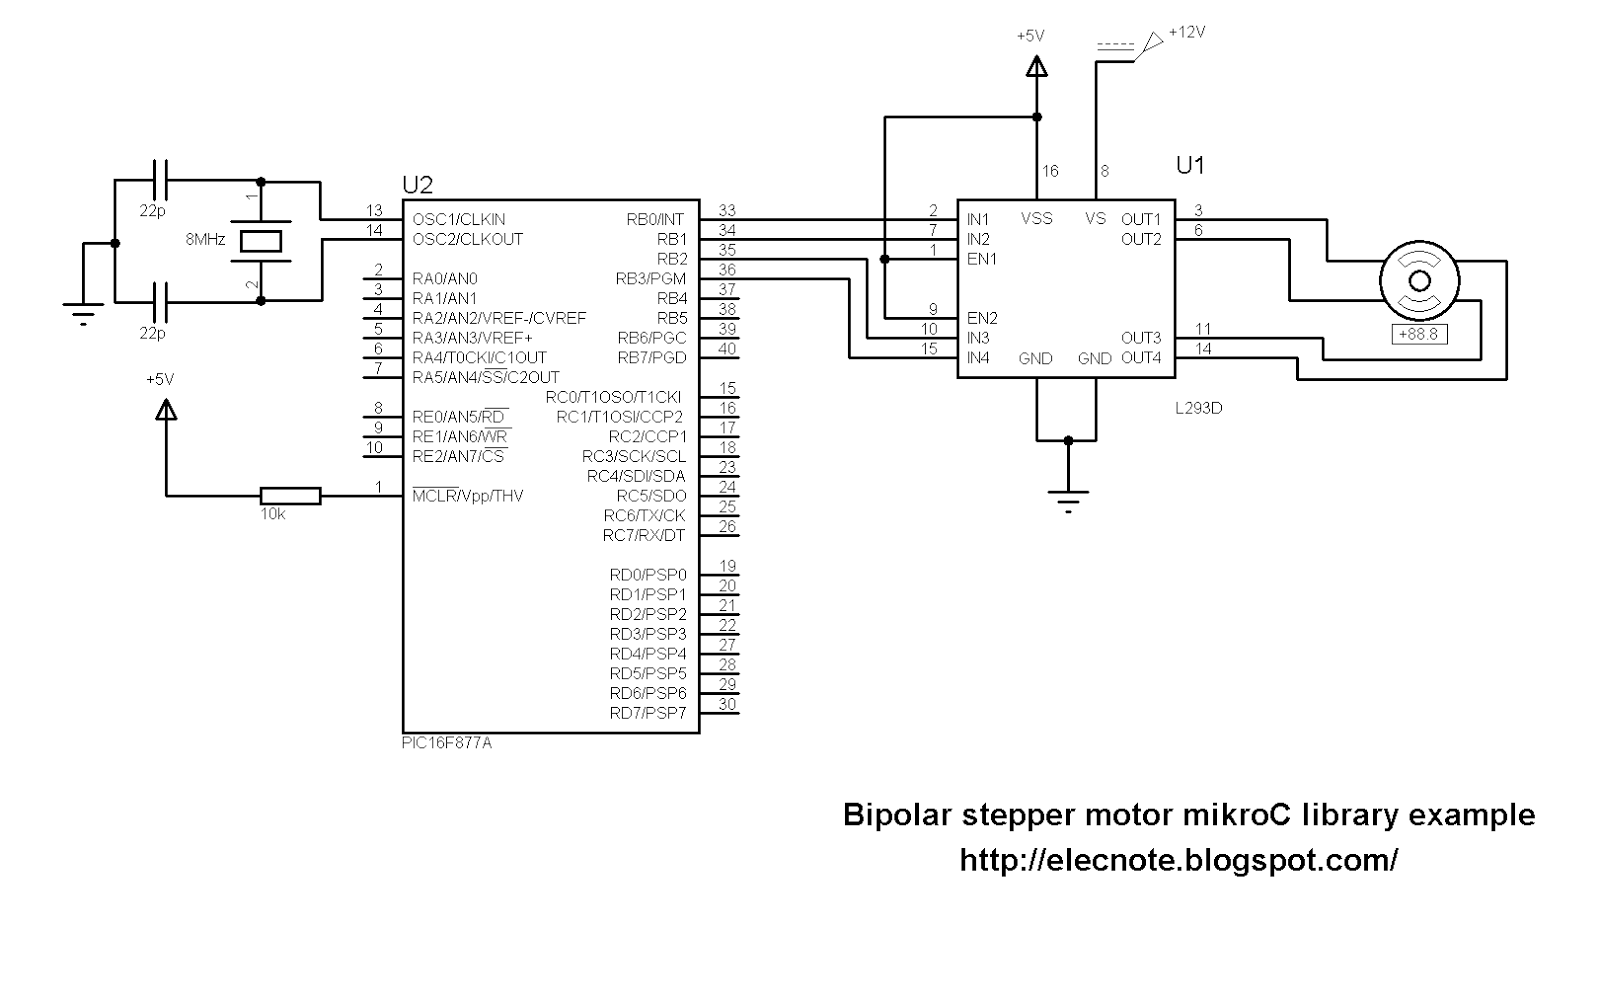 Pic16f84 stepper motor controller for Unipolar and bipolar stepper motor